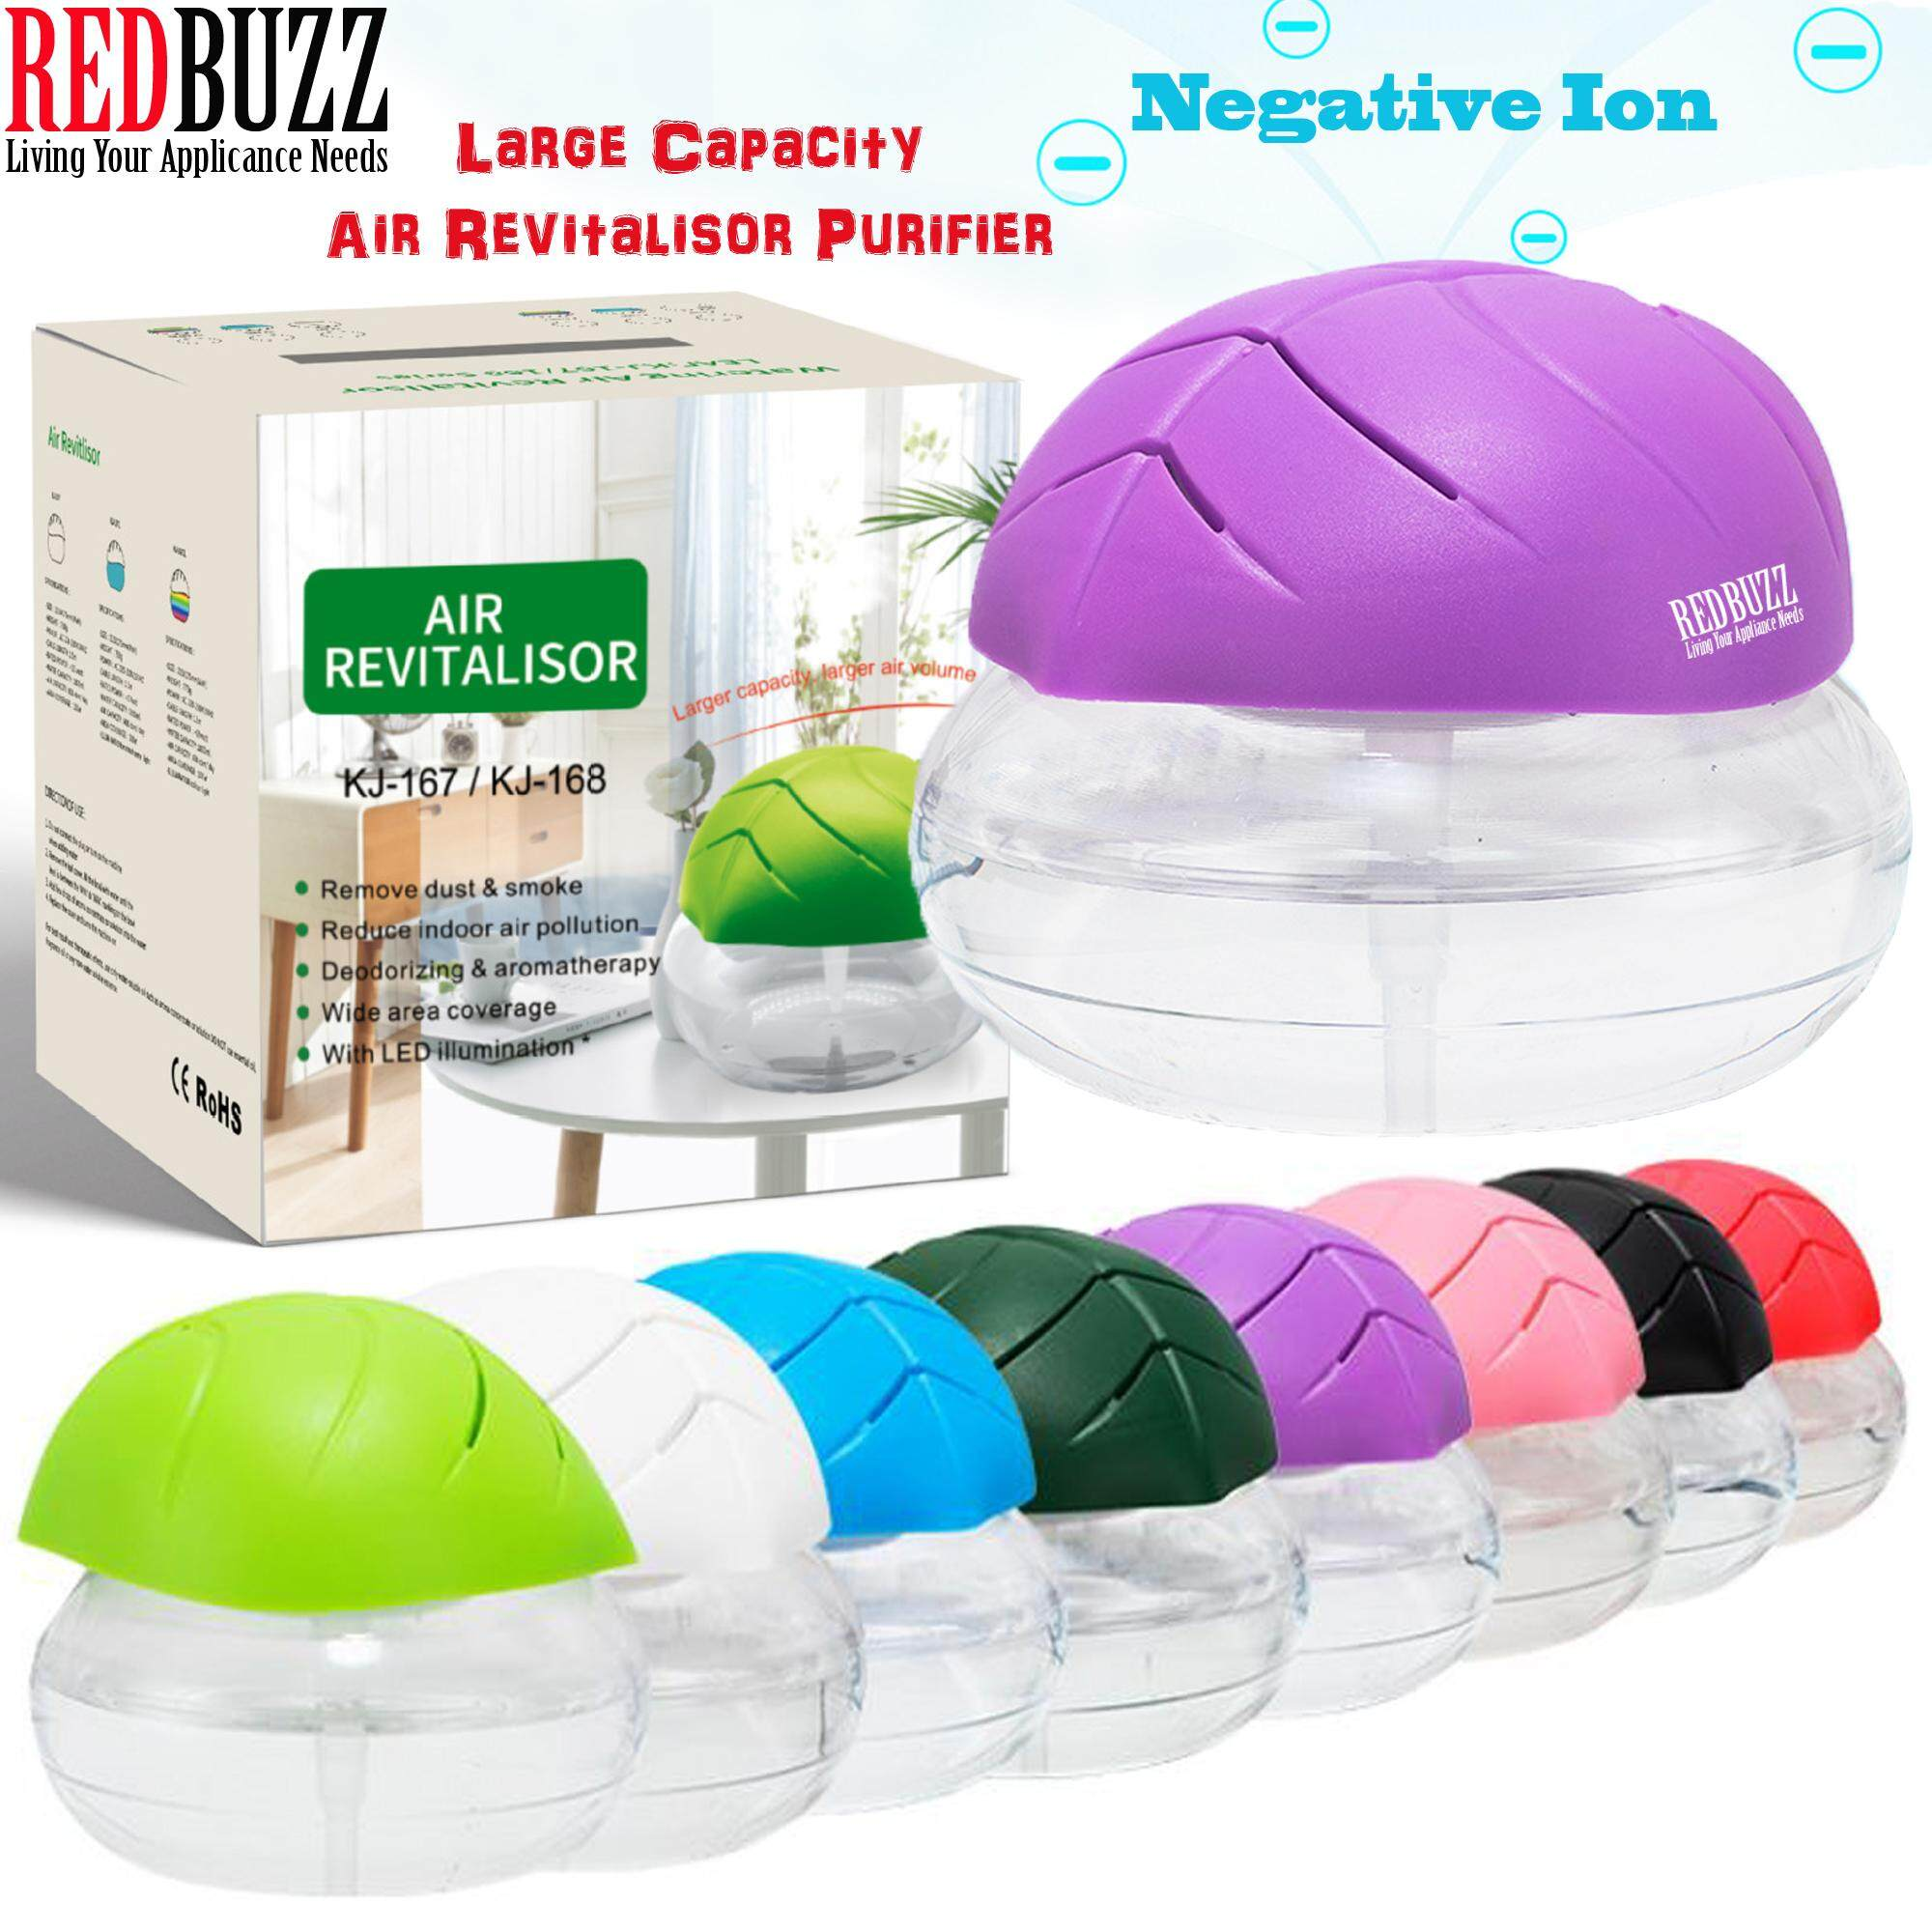 REDBUZZ Large Capacity Watering Air Revitalisor Air Purifier Aroma Diffuser with LED light + Free 15ML Essential Oil